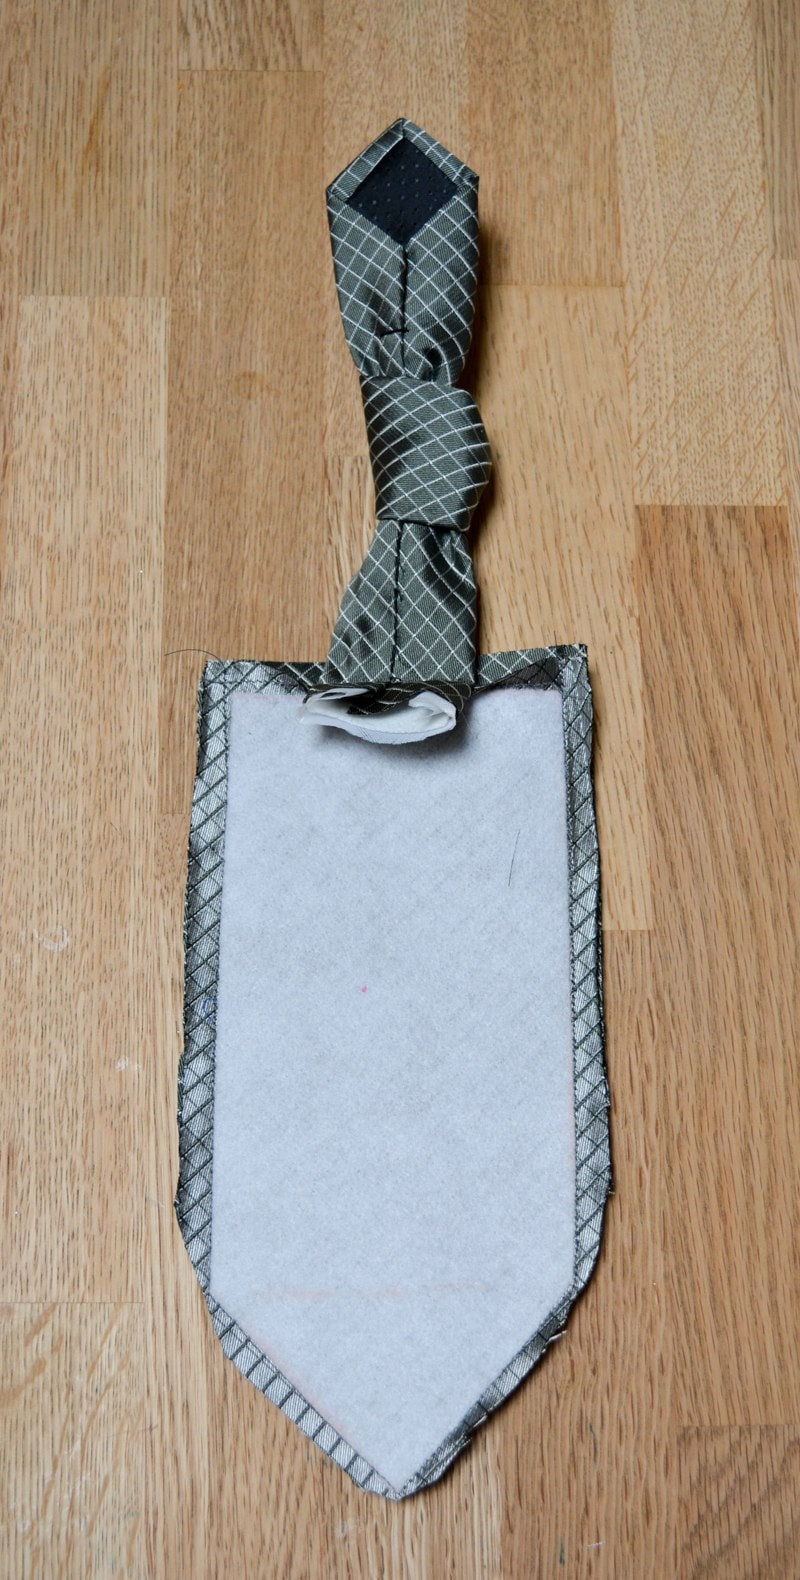 phone holder tie piecing together